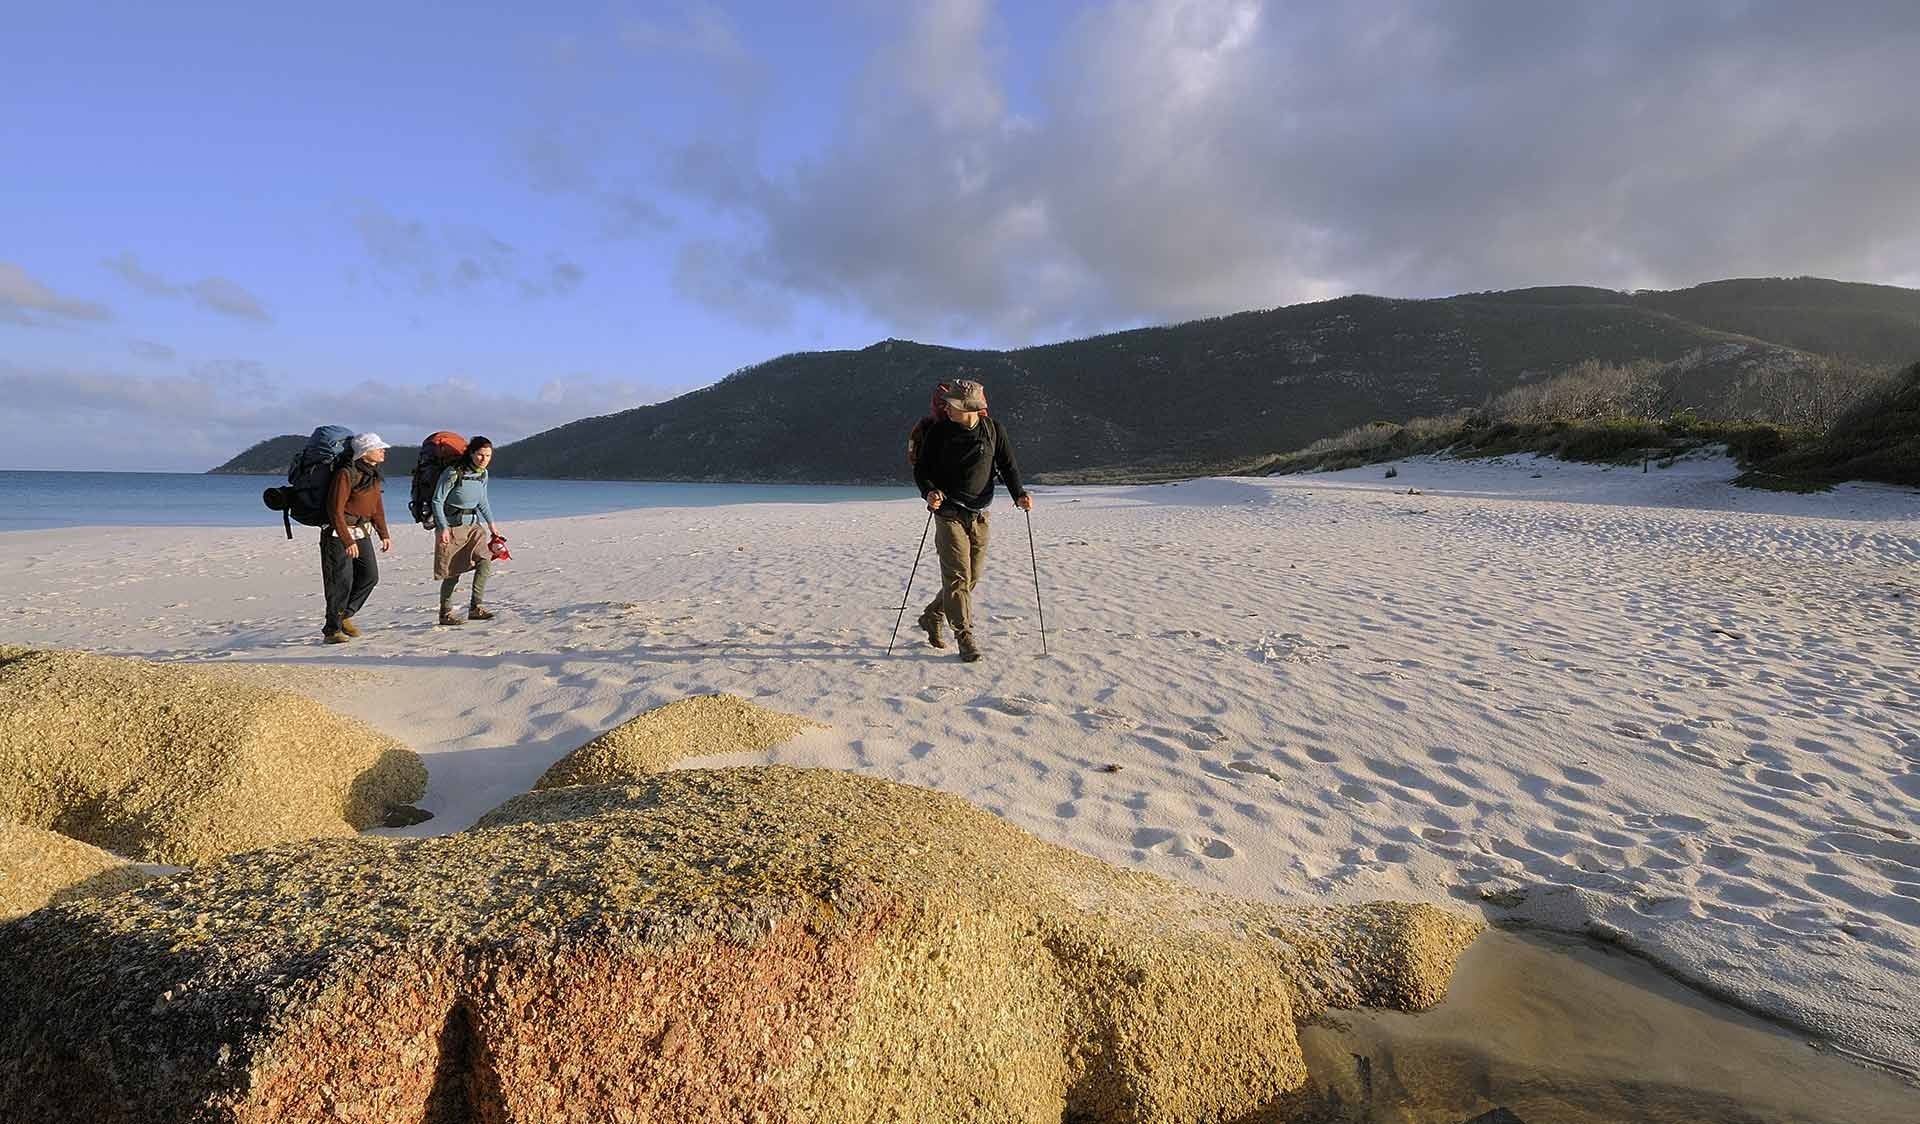 Three hikers walk along the beach at Wilson Promontory National Park.